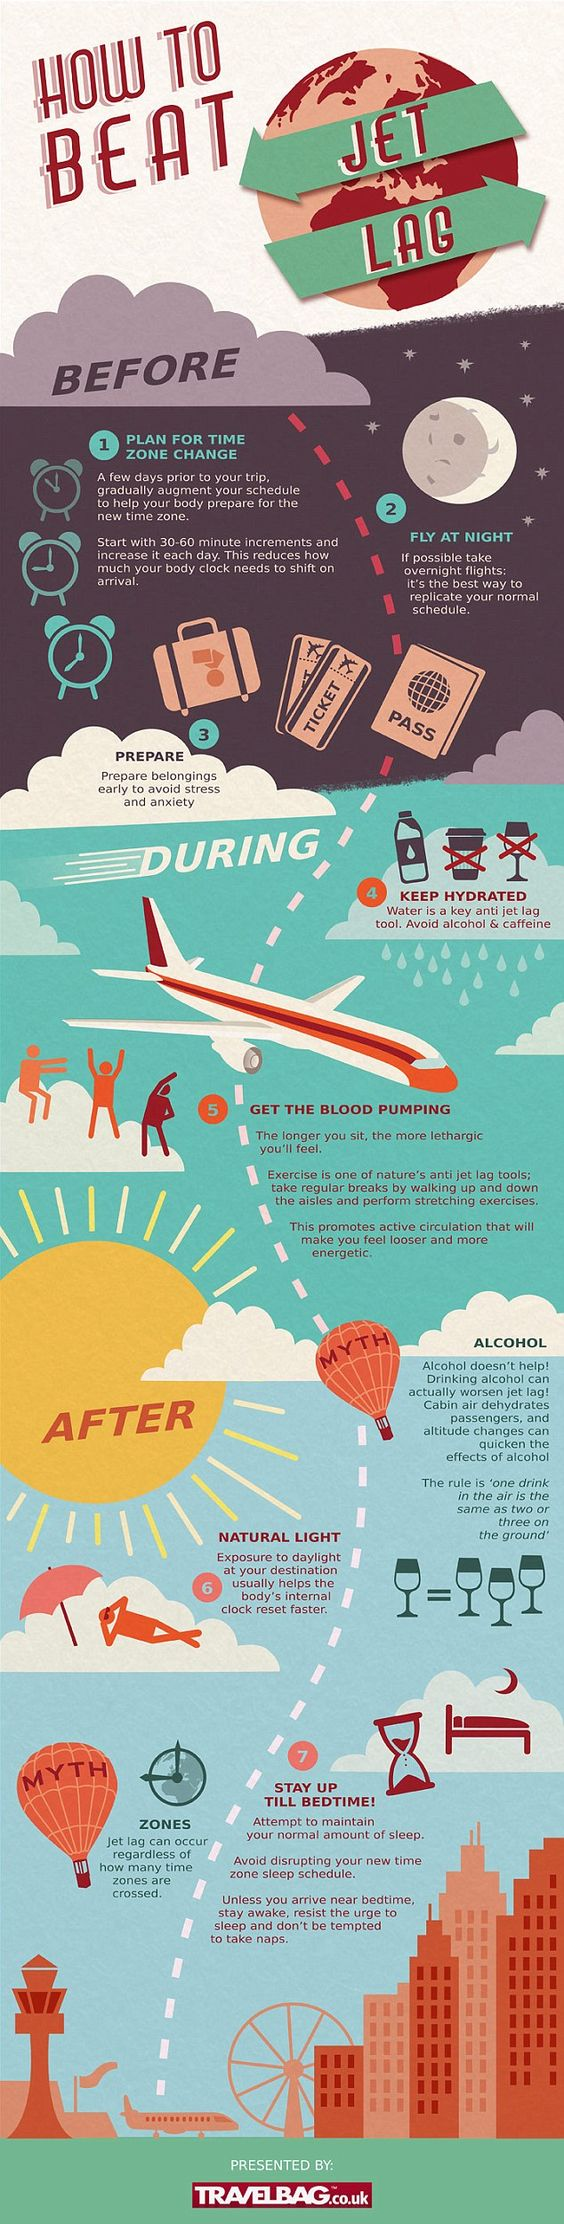 How To Of The Day: How To Beat Jet Lag